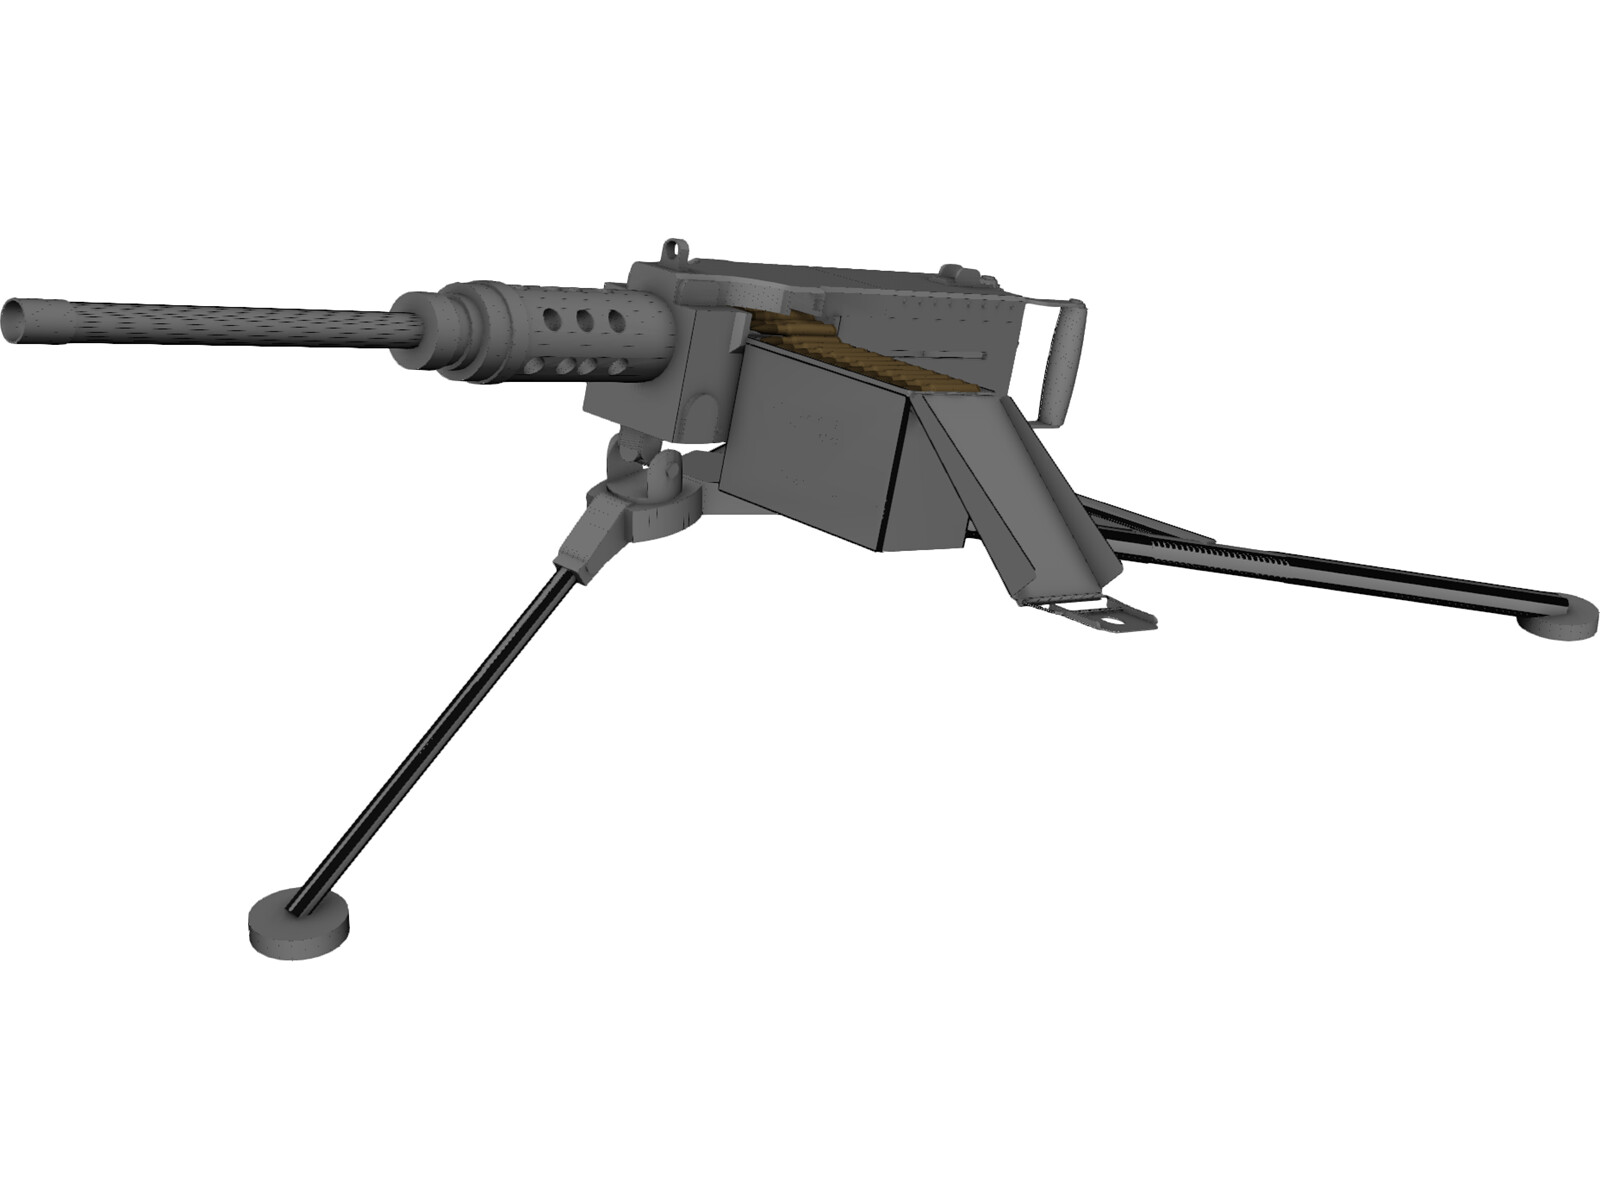 Browning 50 cal 3d model for Kmz to dxf